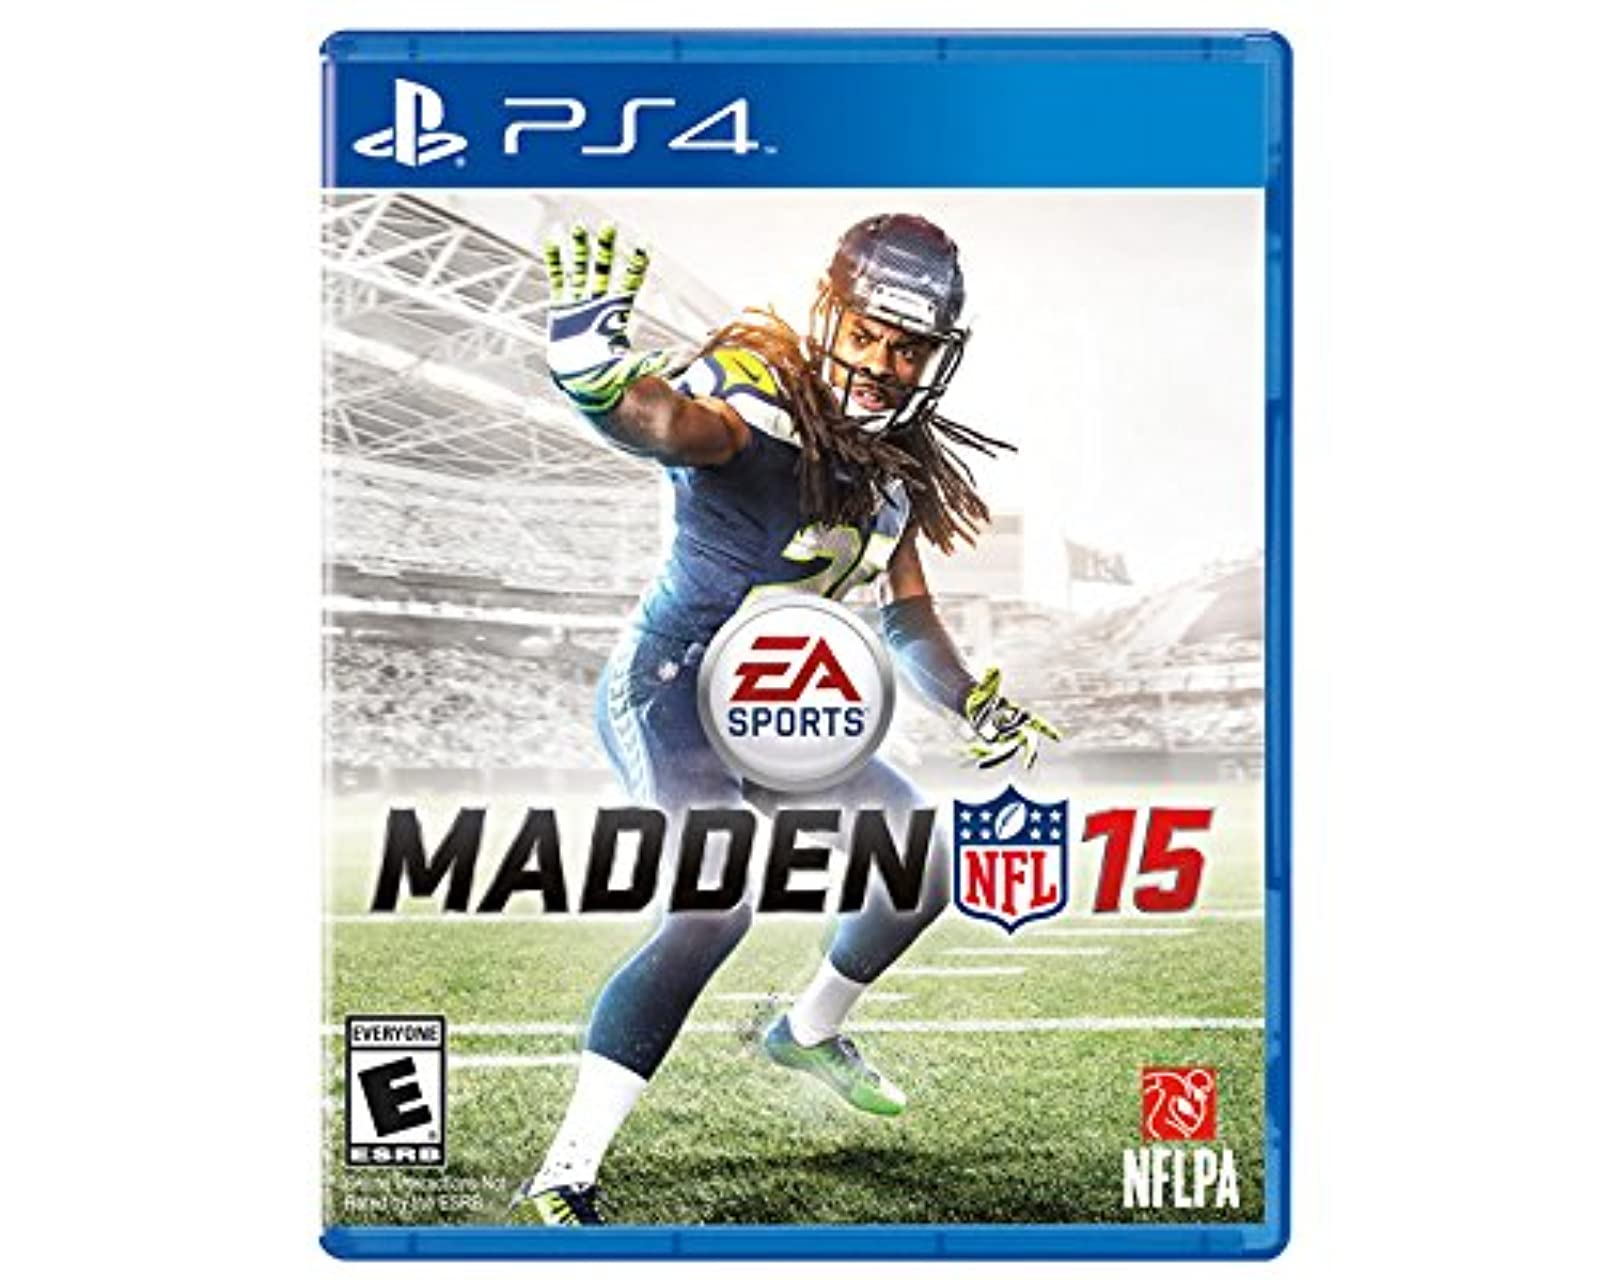 Madden NFL 15 For PlayStation 4 PS4 Football